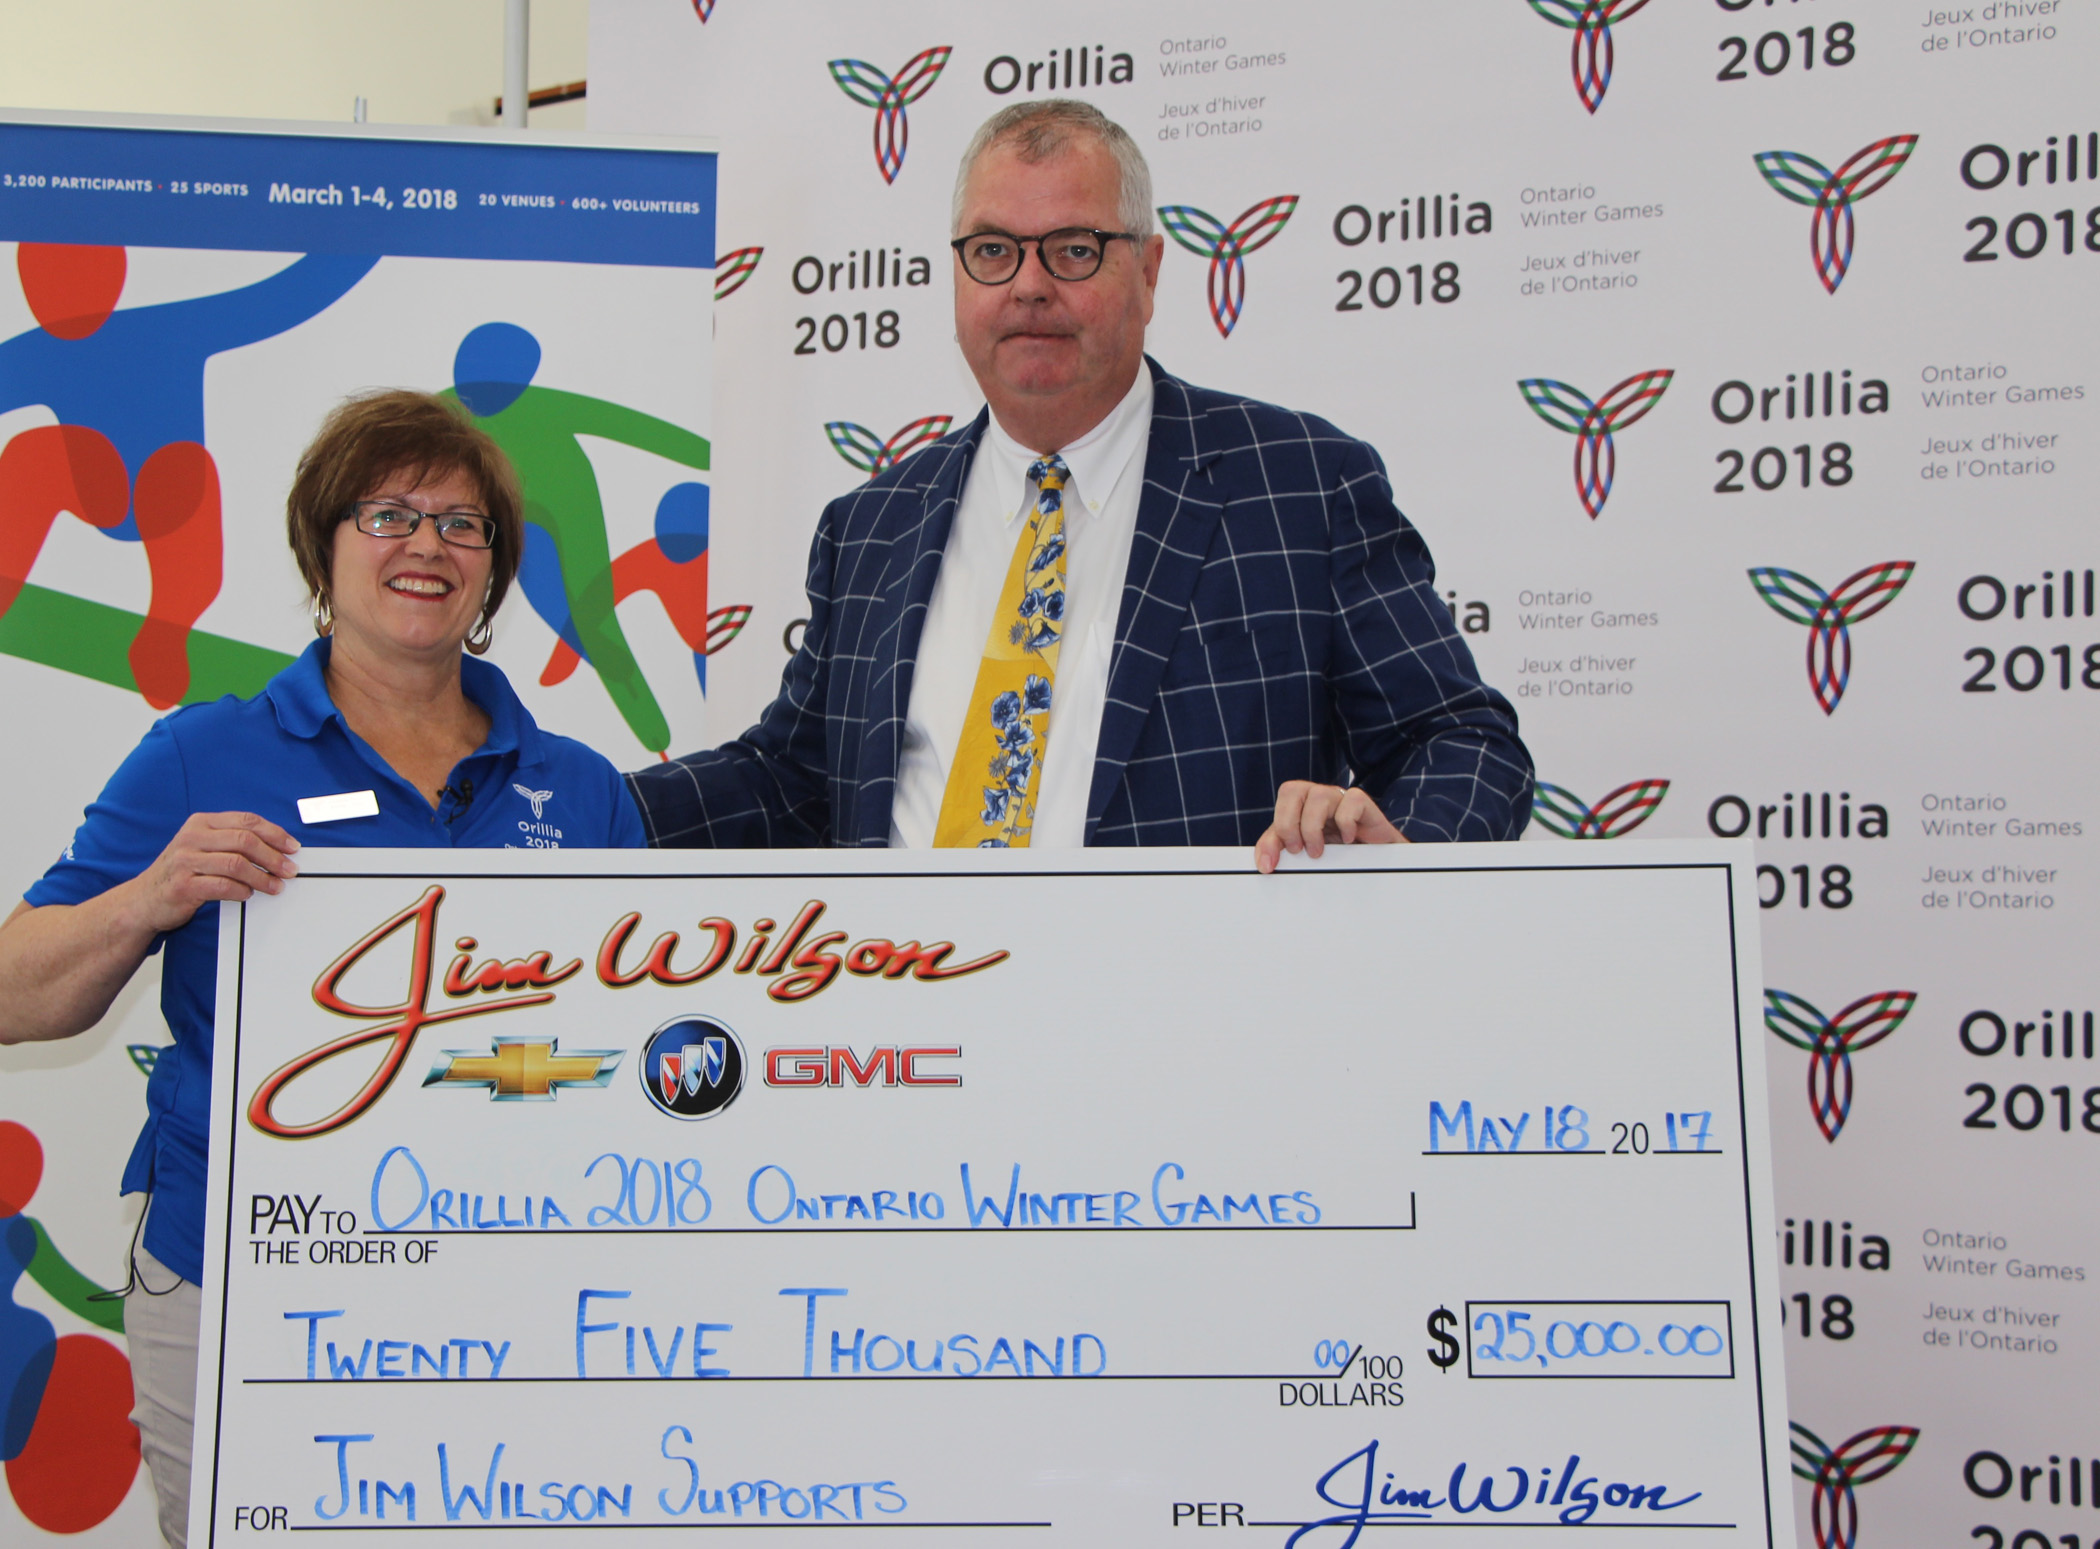 Jim Wilson of Jim Wilson Chevrolet Buick GMC presents a cheque for $25,000 to Orillia 2018 chair, Gill Tillmann, in support of the Ontario Winter Games, to be hosted by the City of Orillia from March 1 – 4, 2018.